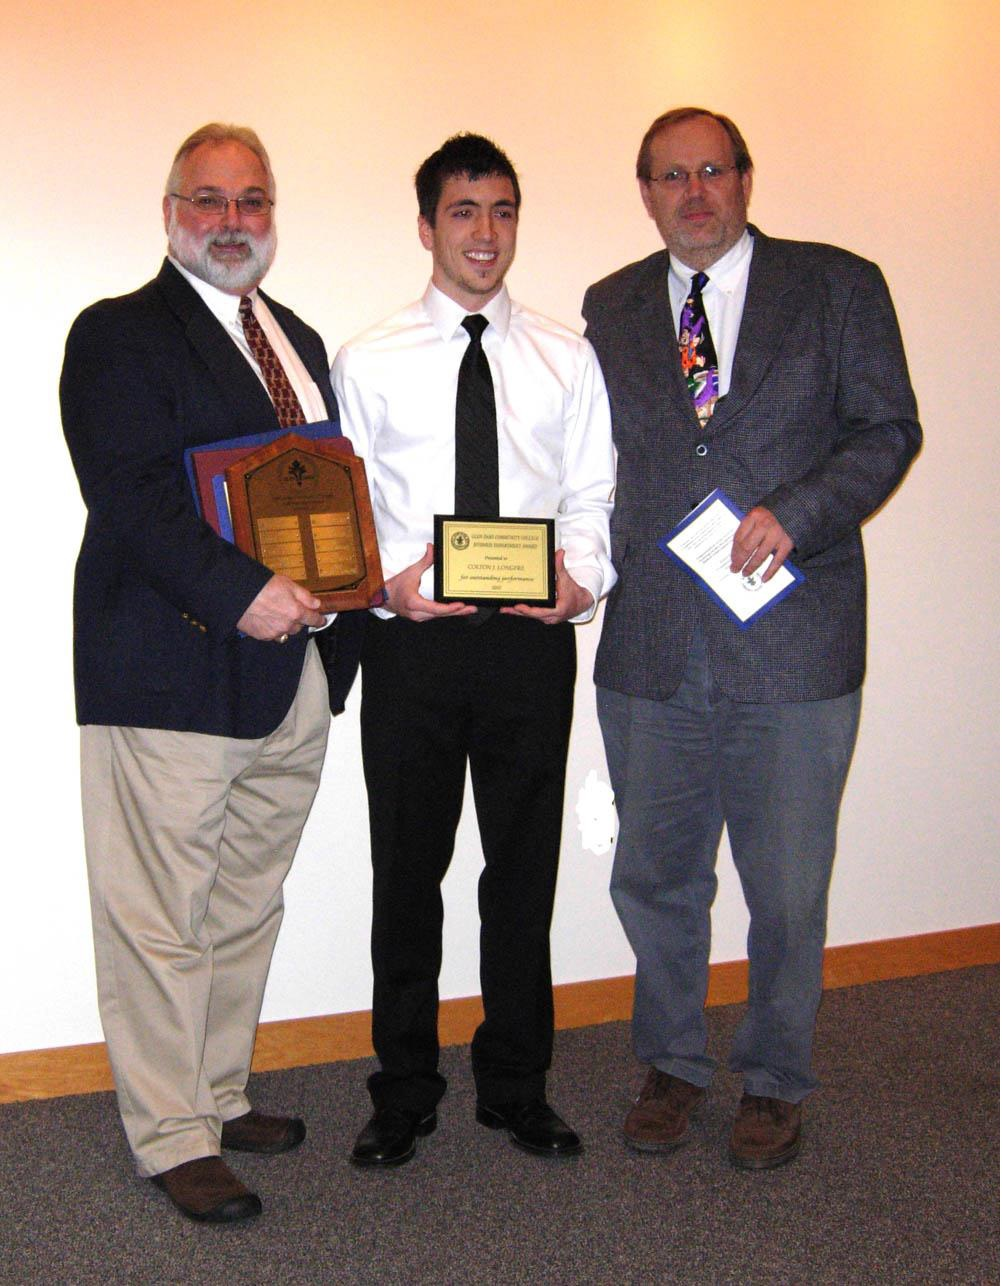 Bill Furr, Colton Longpre, and Dr. Lester Keith